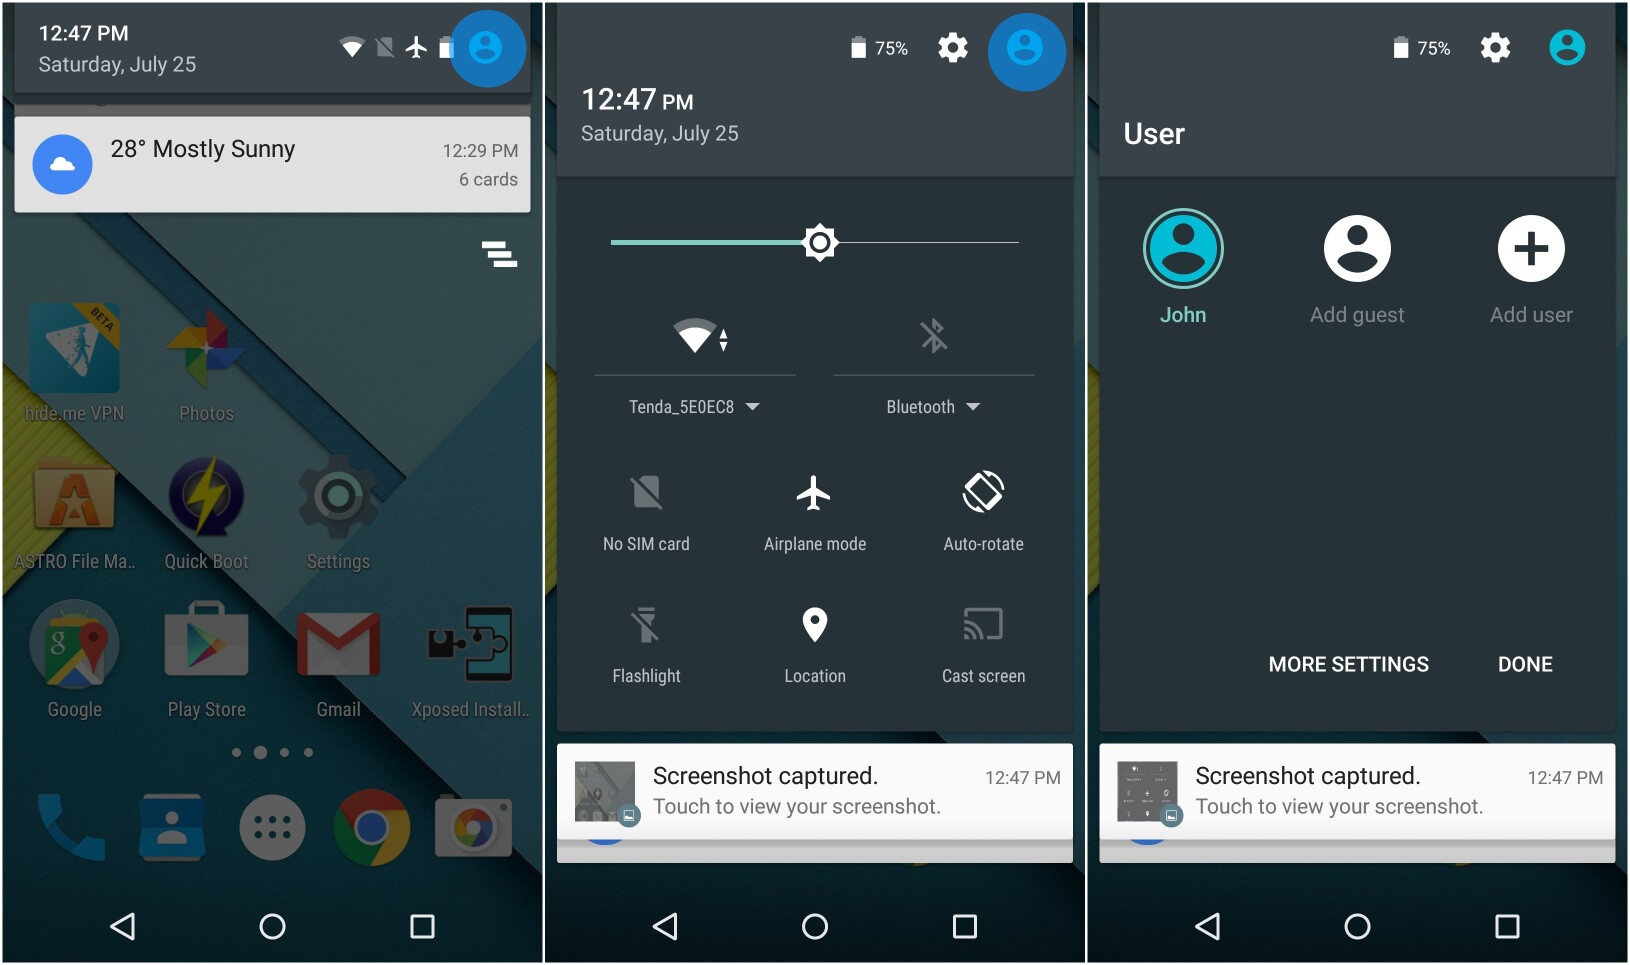 How To Change Your User Profile Pic In Android Lollipop